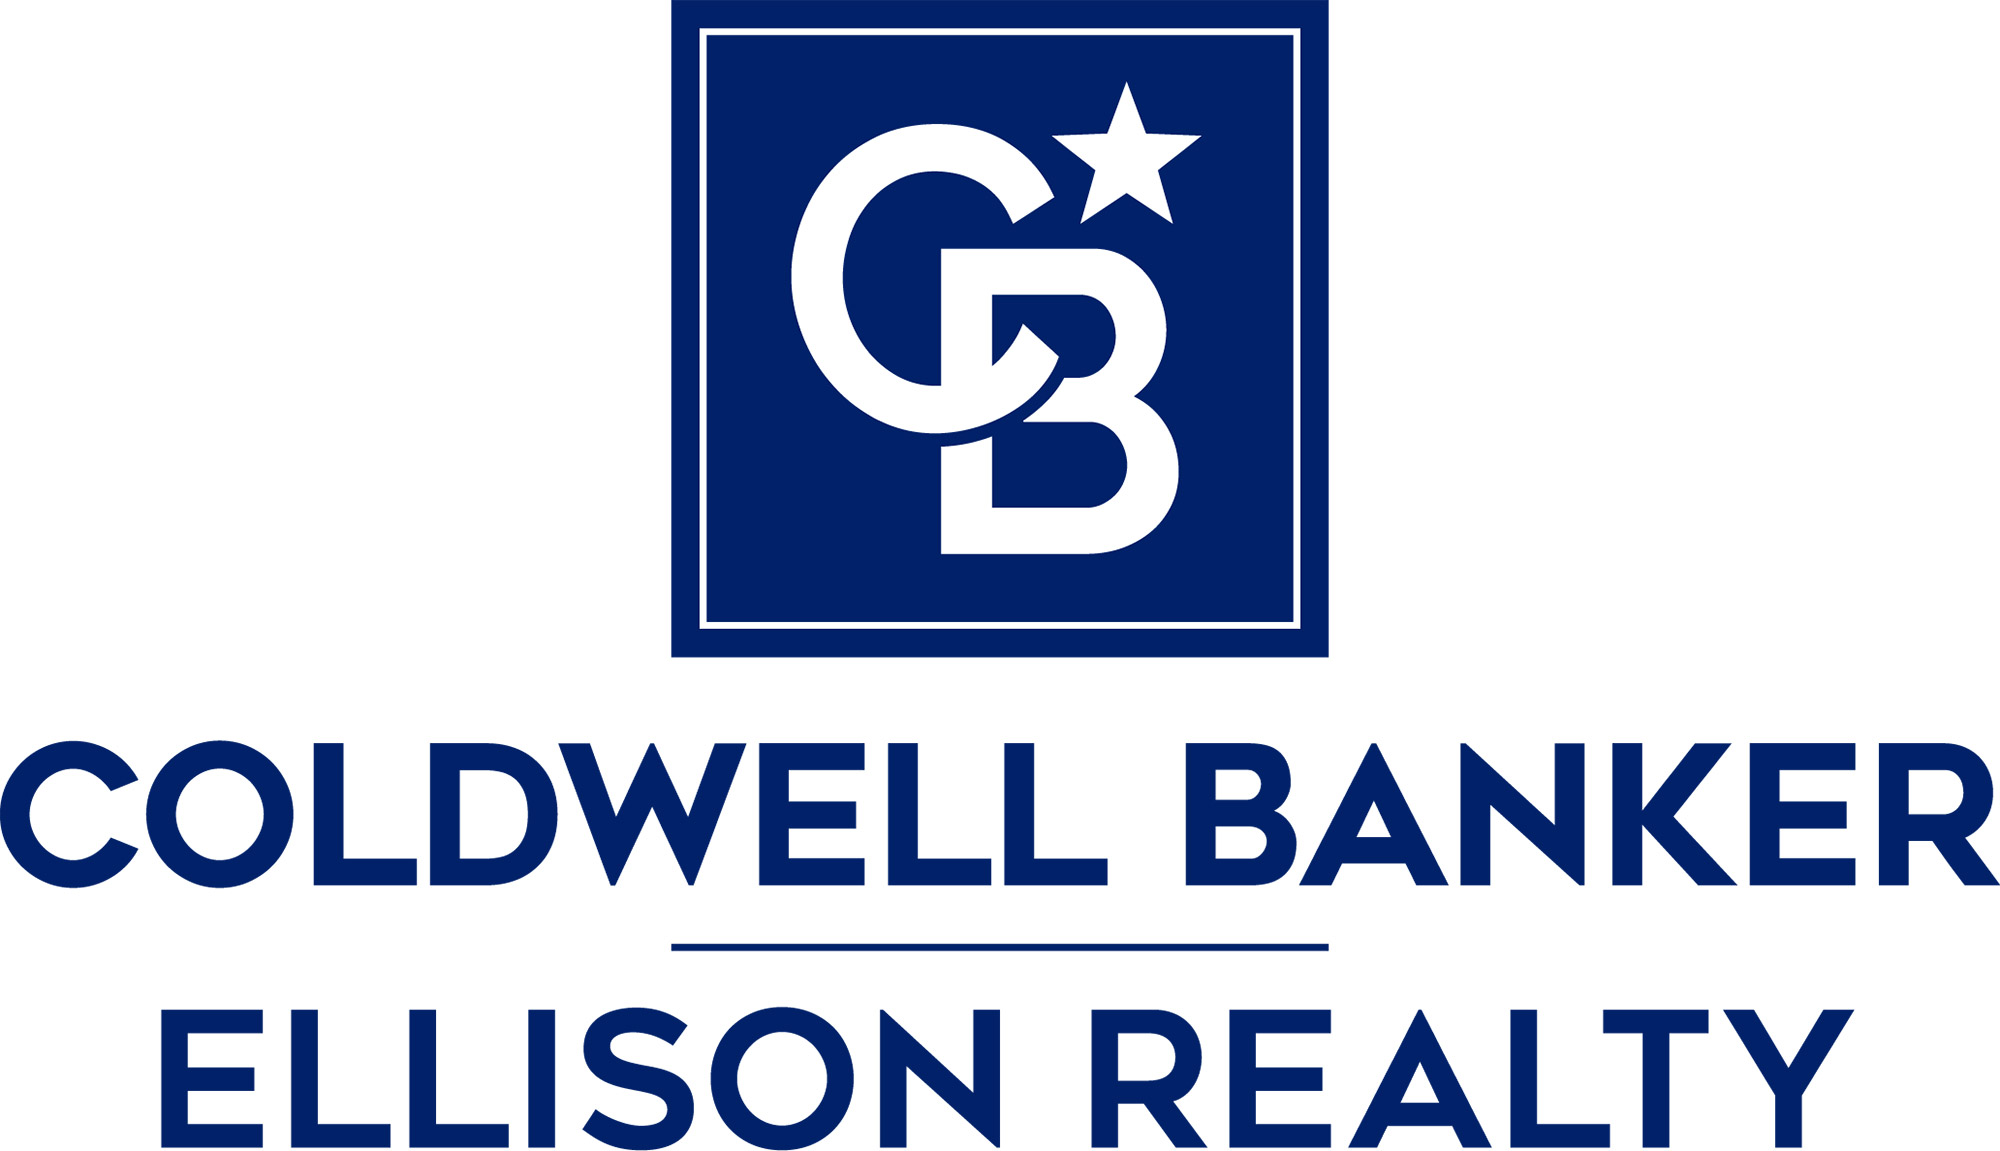 Zell Hall - Coldwell Banker Ellison Realty